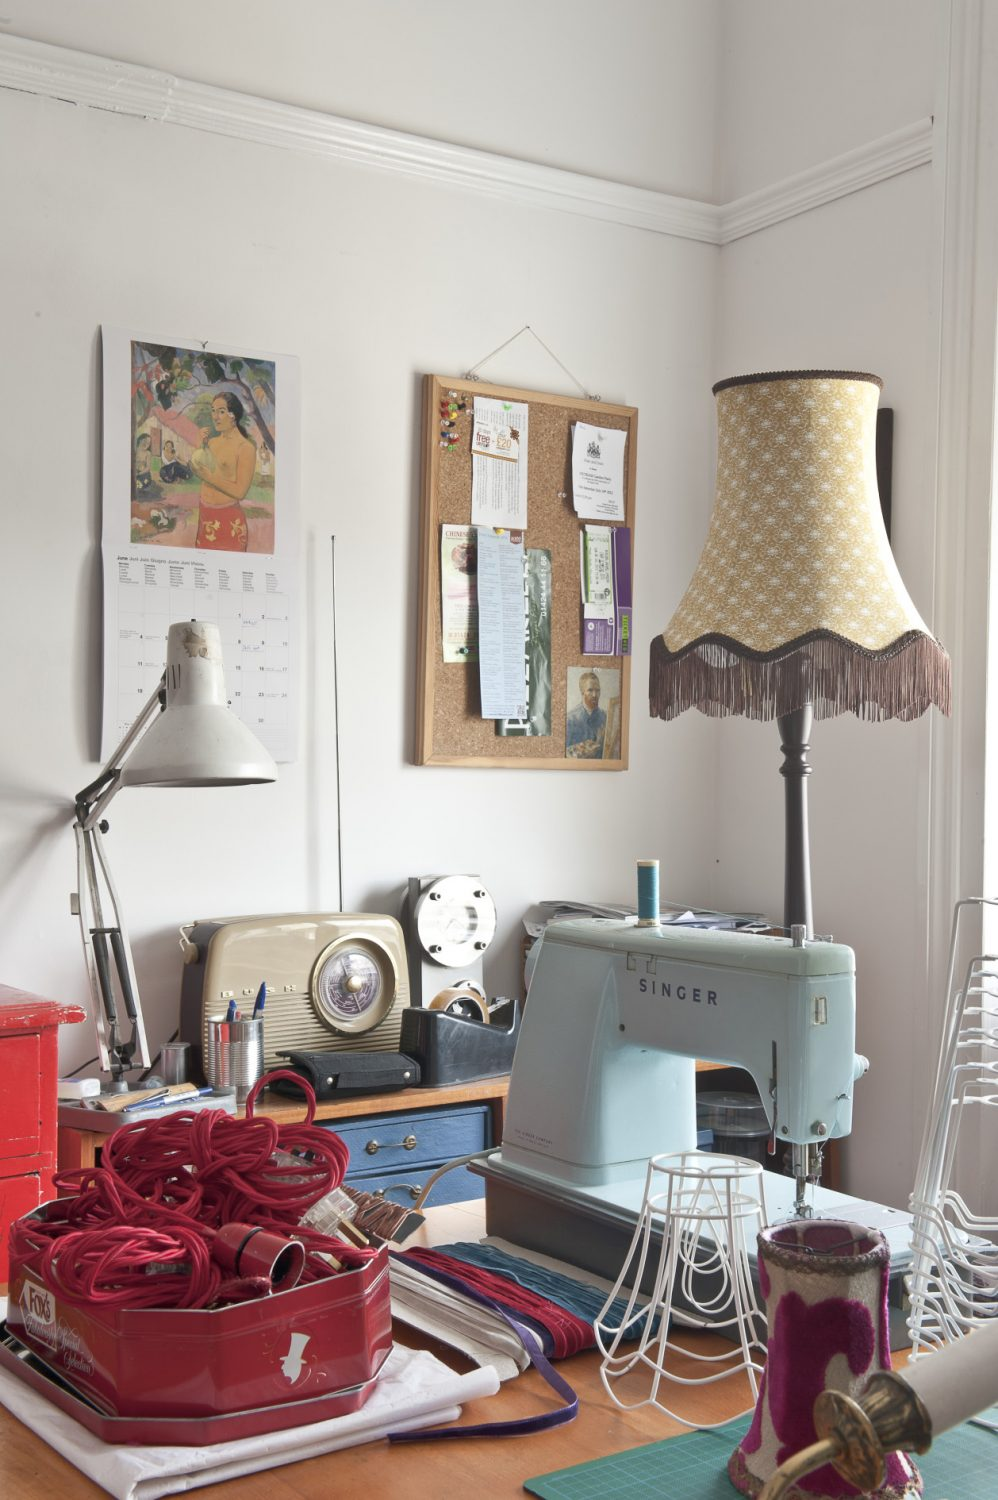 Charlotte's 'den' where she designs and makes her lampshades. A simple table stands in front of the window and on top of it is a smart but rather old-fashioned-looking sky blue Singer sewing machine